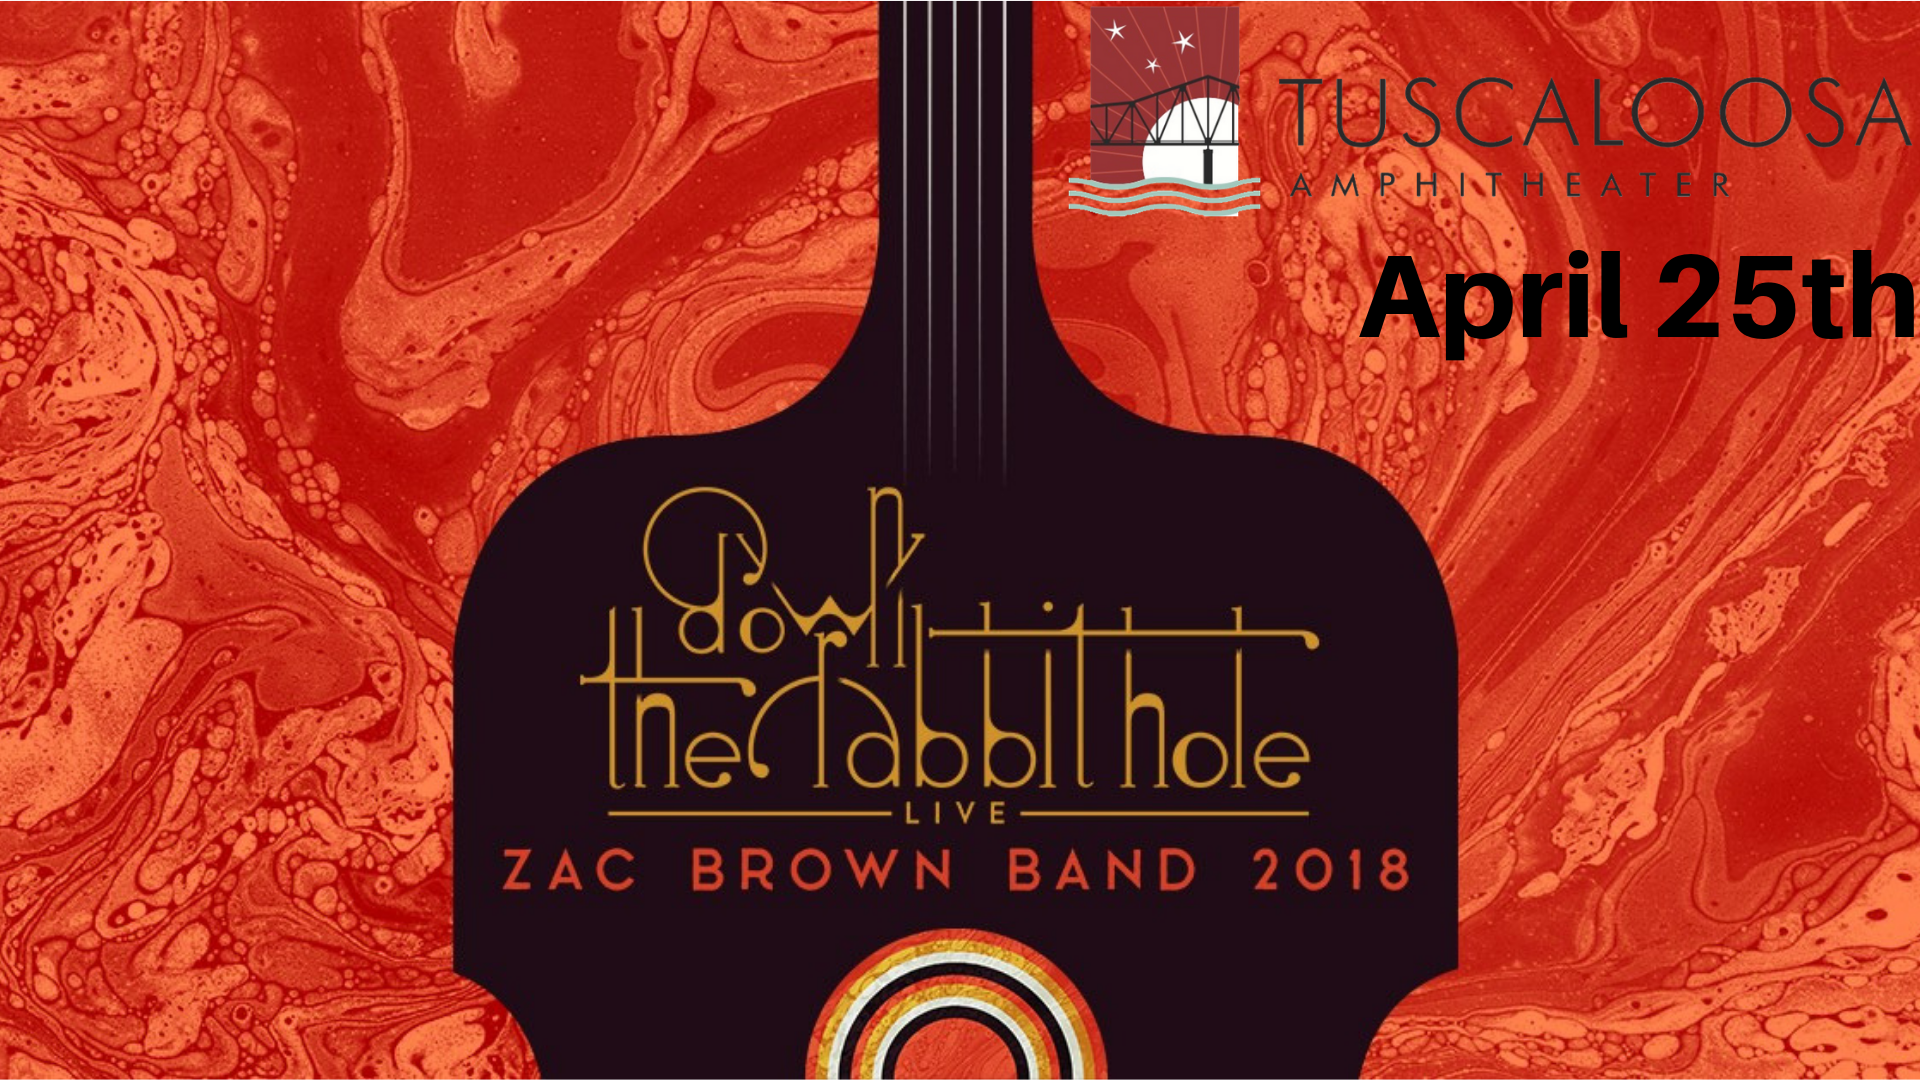 Zac Brown Band Tuscaloosa Amphitheater April 25th